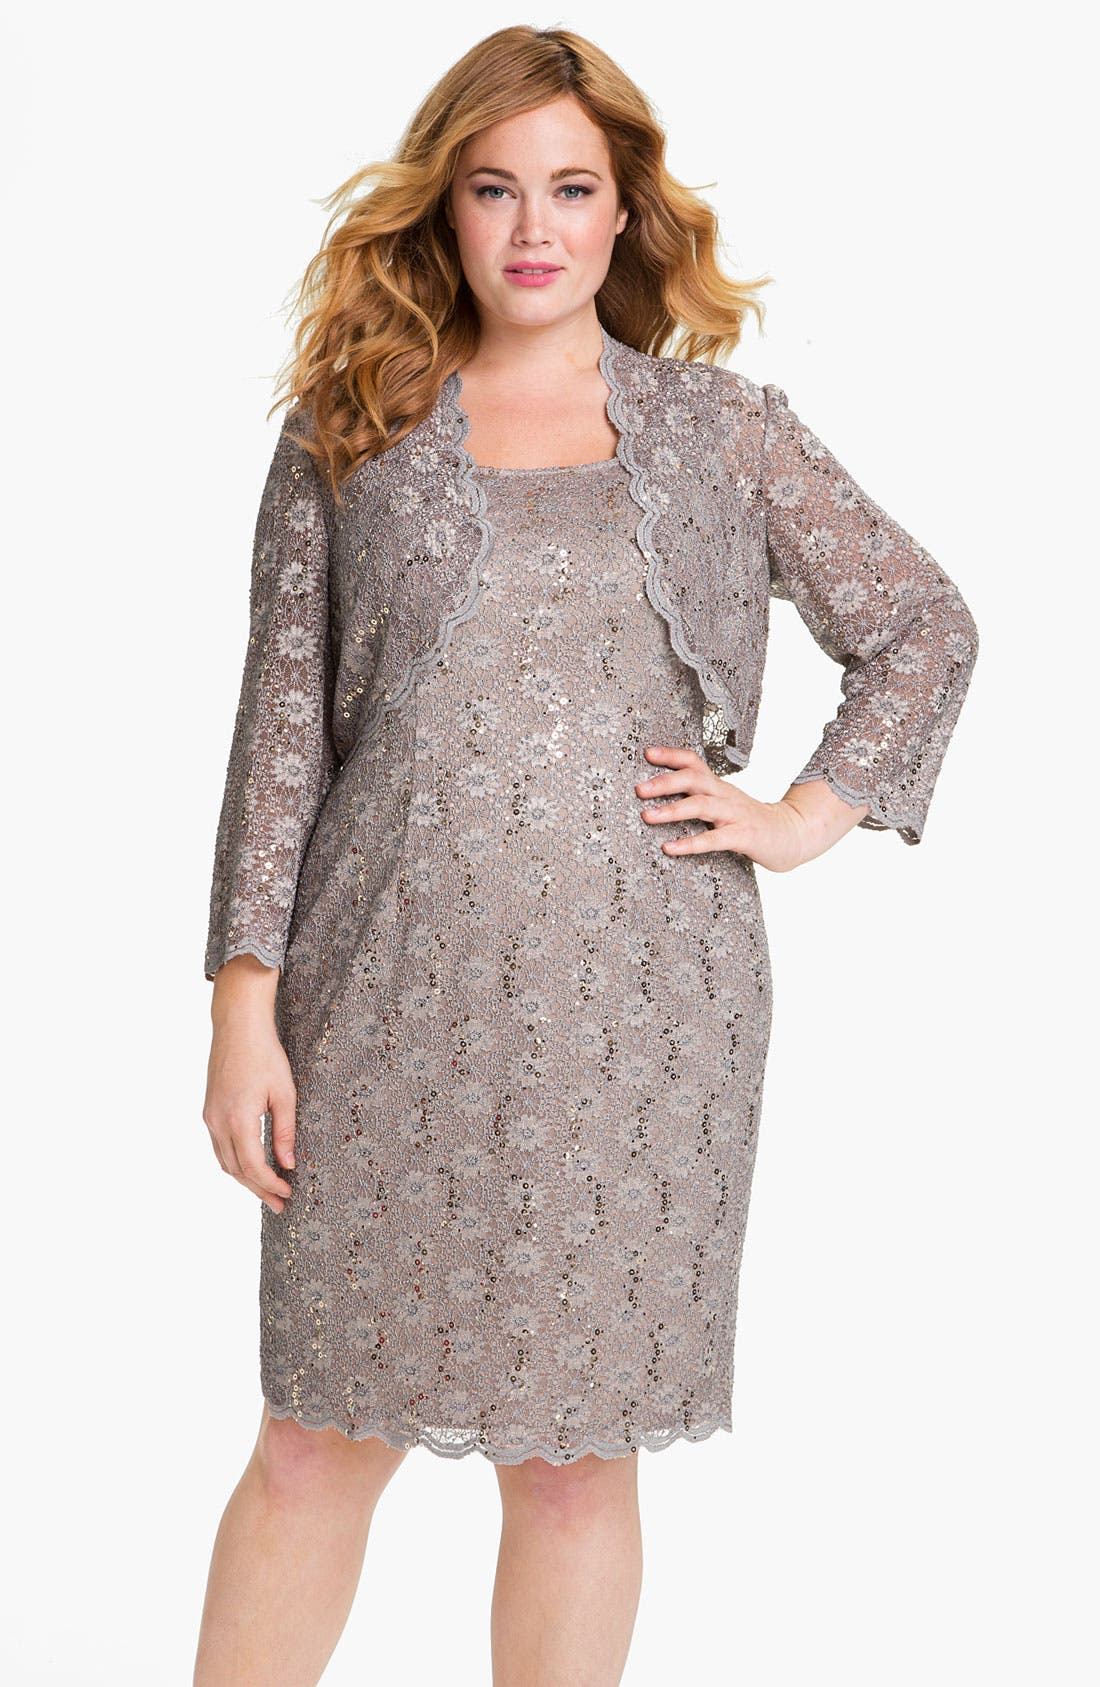 Alternate Image 1 Selected - Alex Evenings Sequined Lace Sleeveless Dress & Bolero (Plus Size)